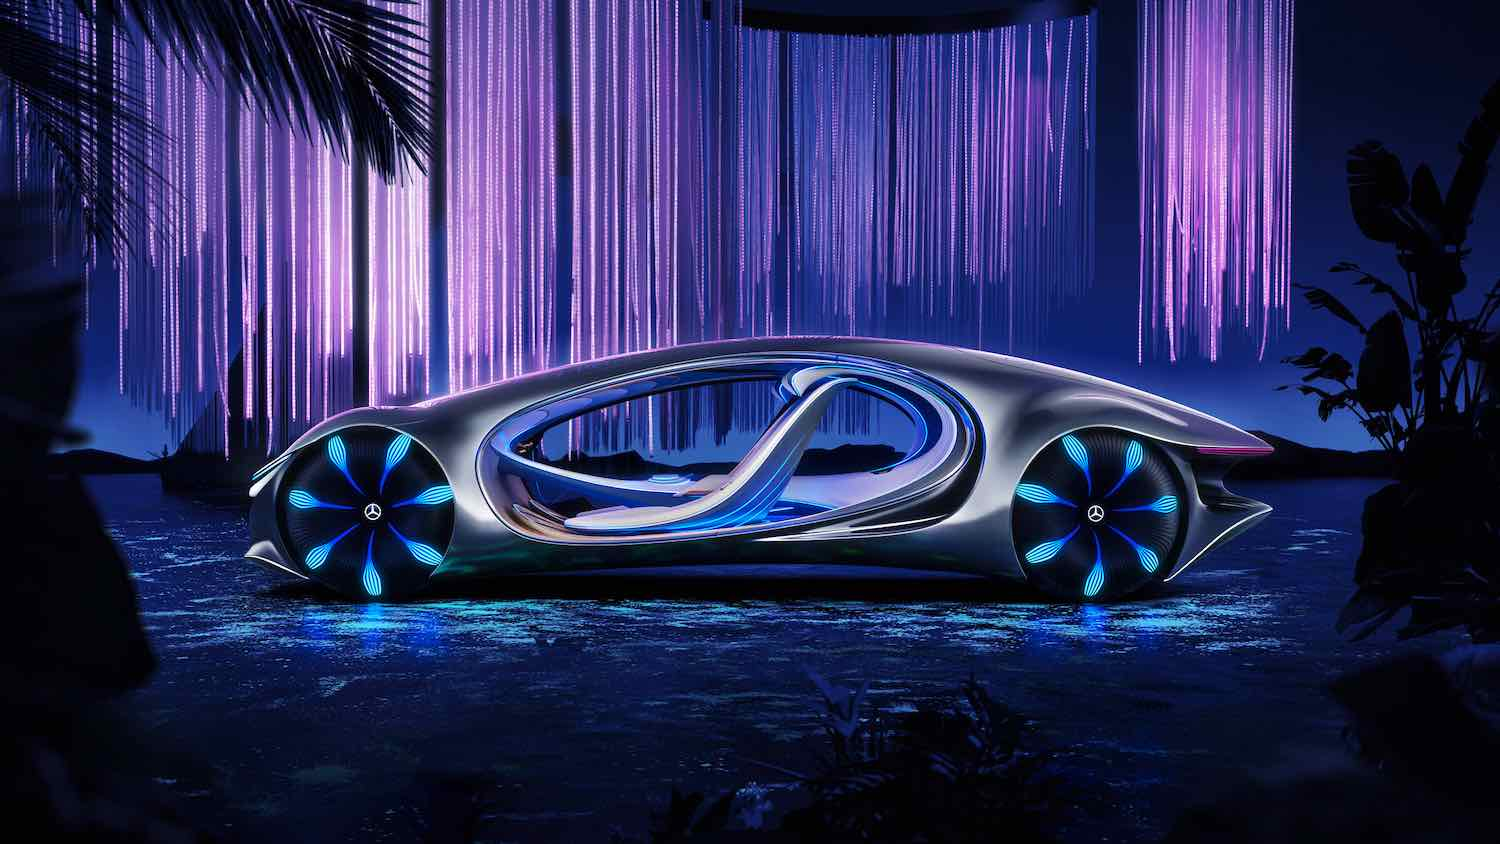 5 Future mobility innovations debuting at CES 2020. 'Vision AVTR' car design by Mercedes Benz - © Mercedes Benz.